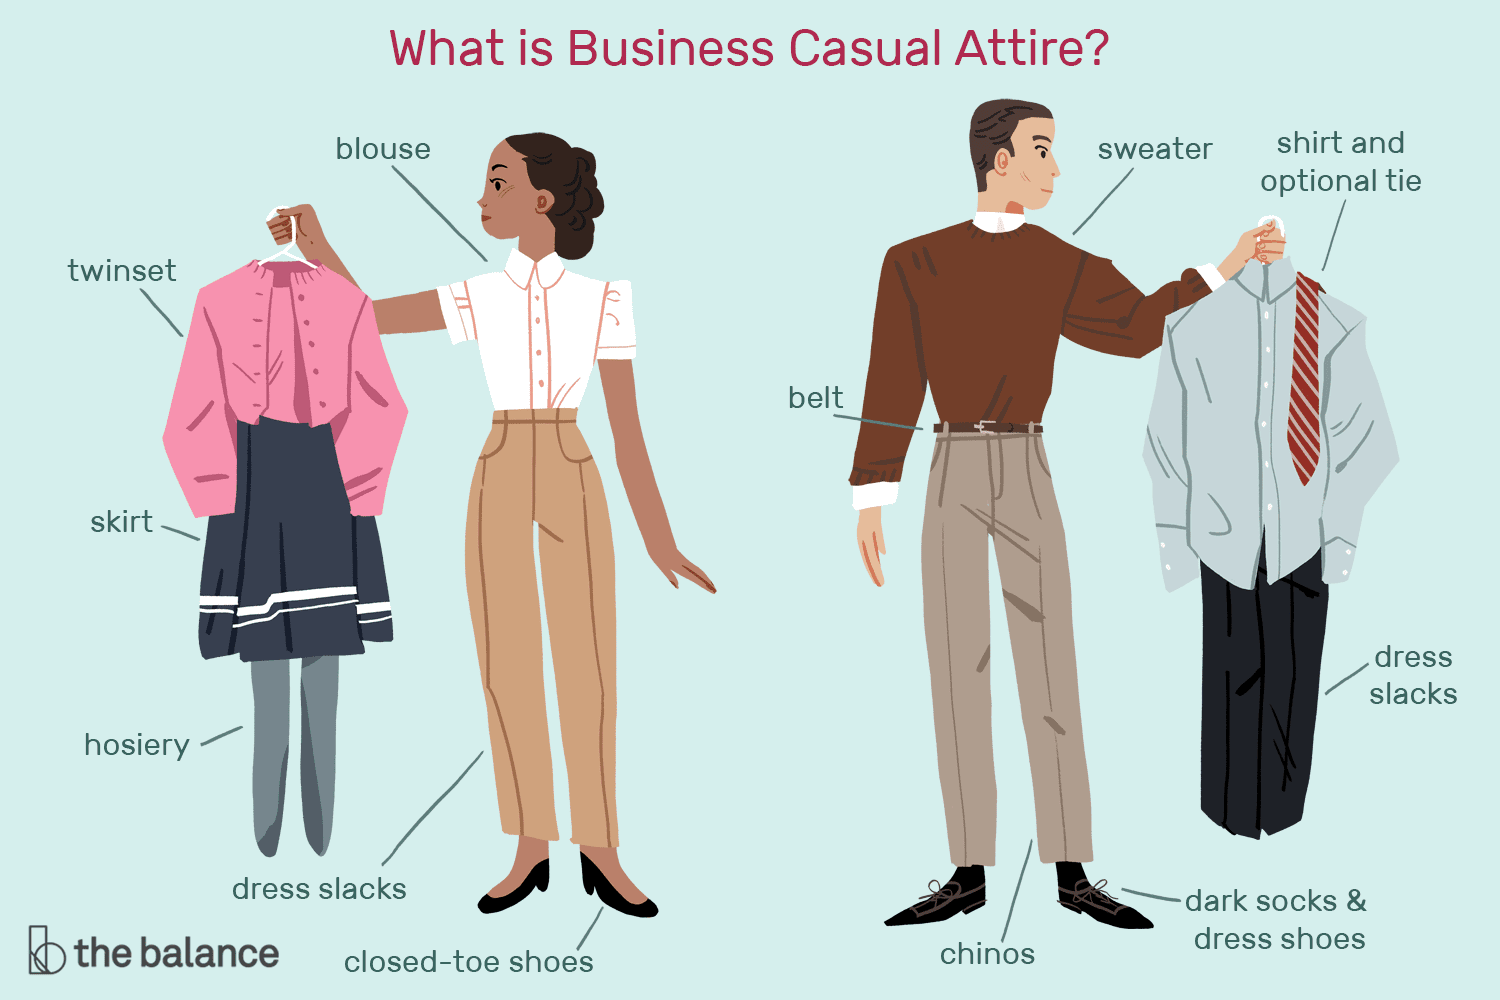 What Does Business Casual Attire Mean